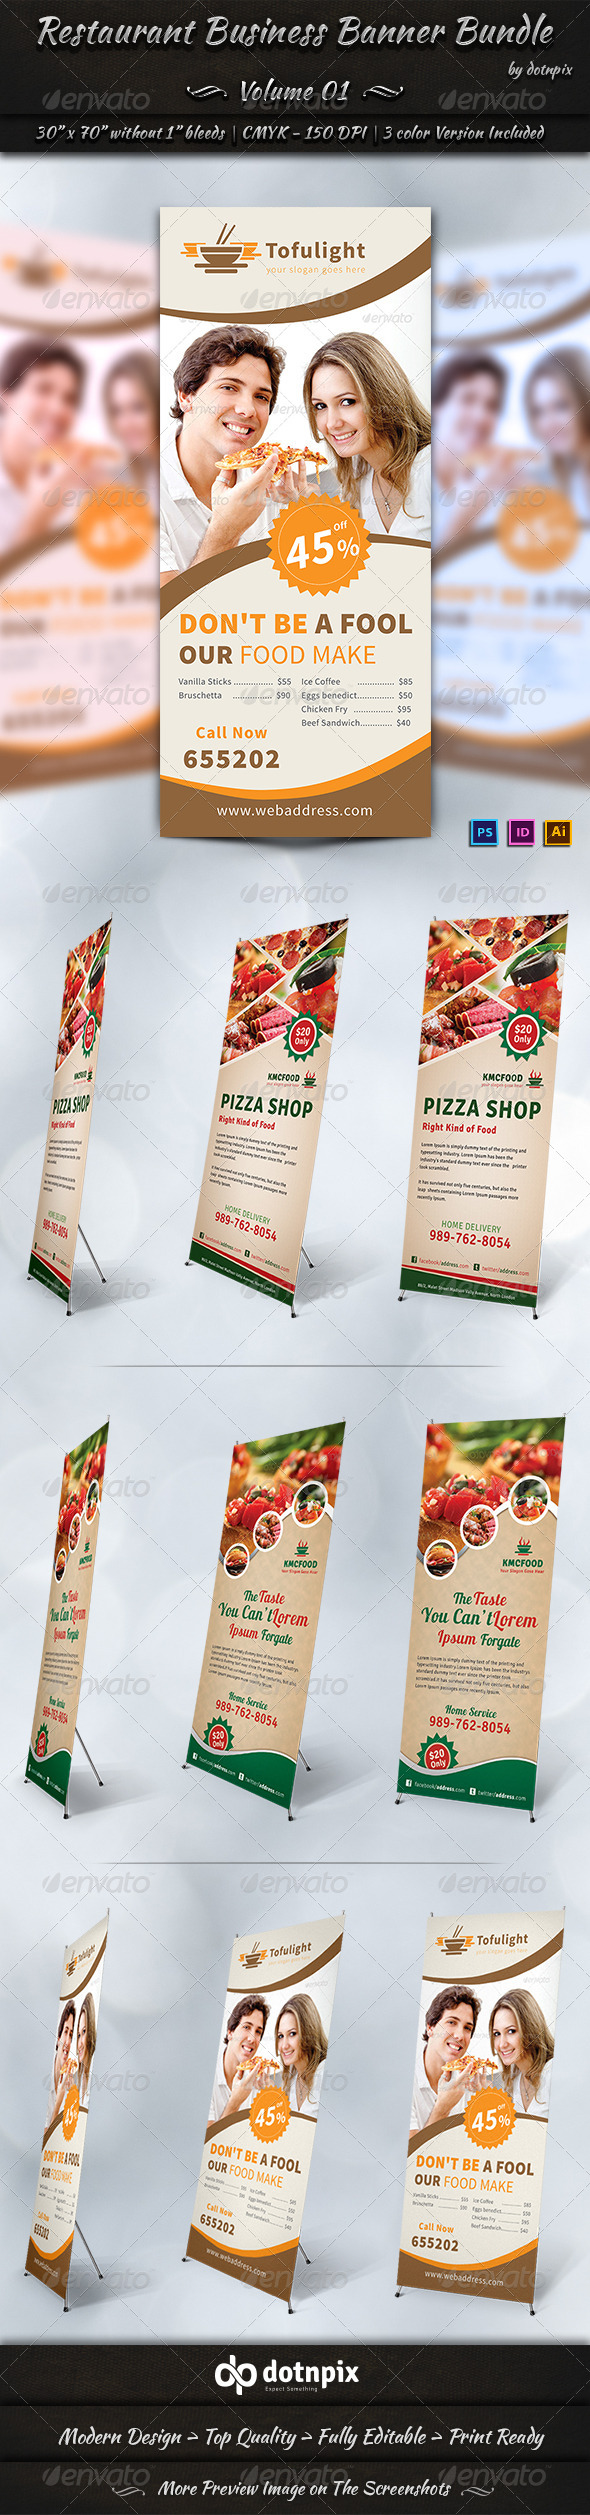 GraphicRiver Restaurant Business Banner Bundle Volume 1 7251554